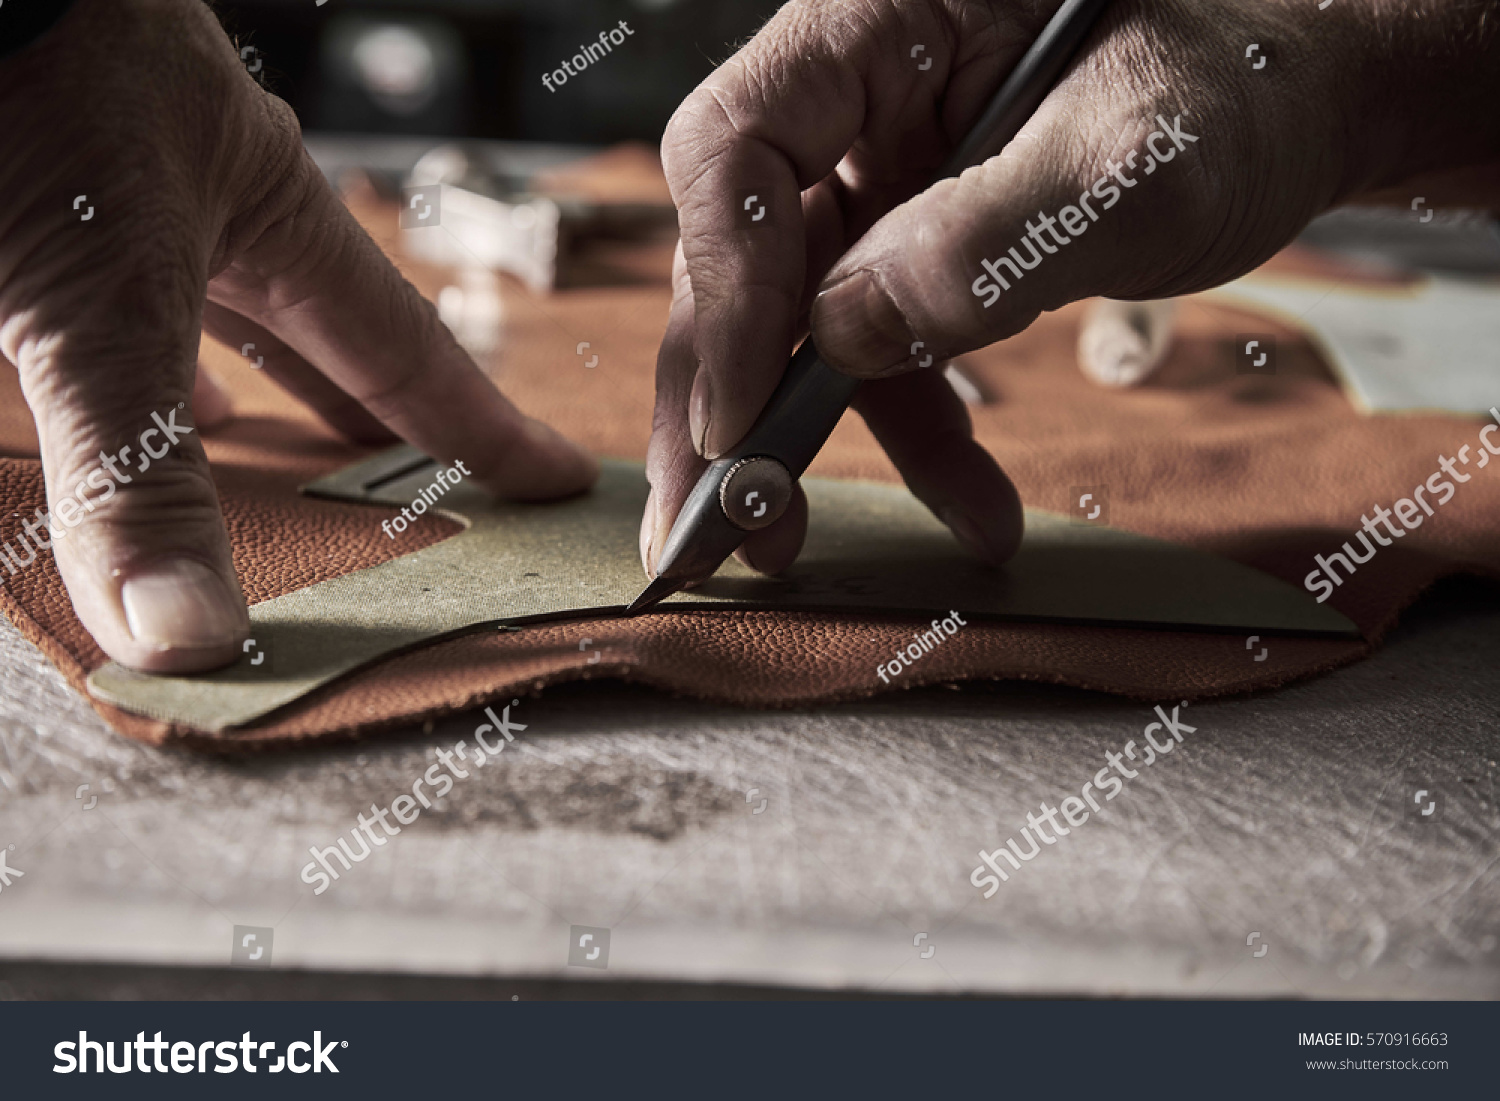 stock-photo-shoe-production-process-in-factory-570916663.jpg